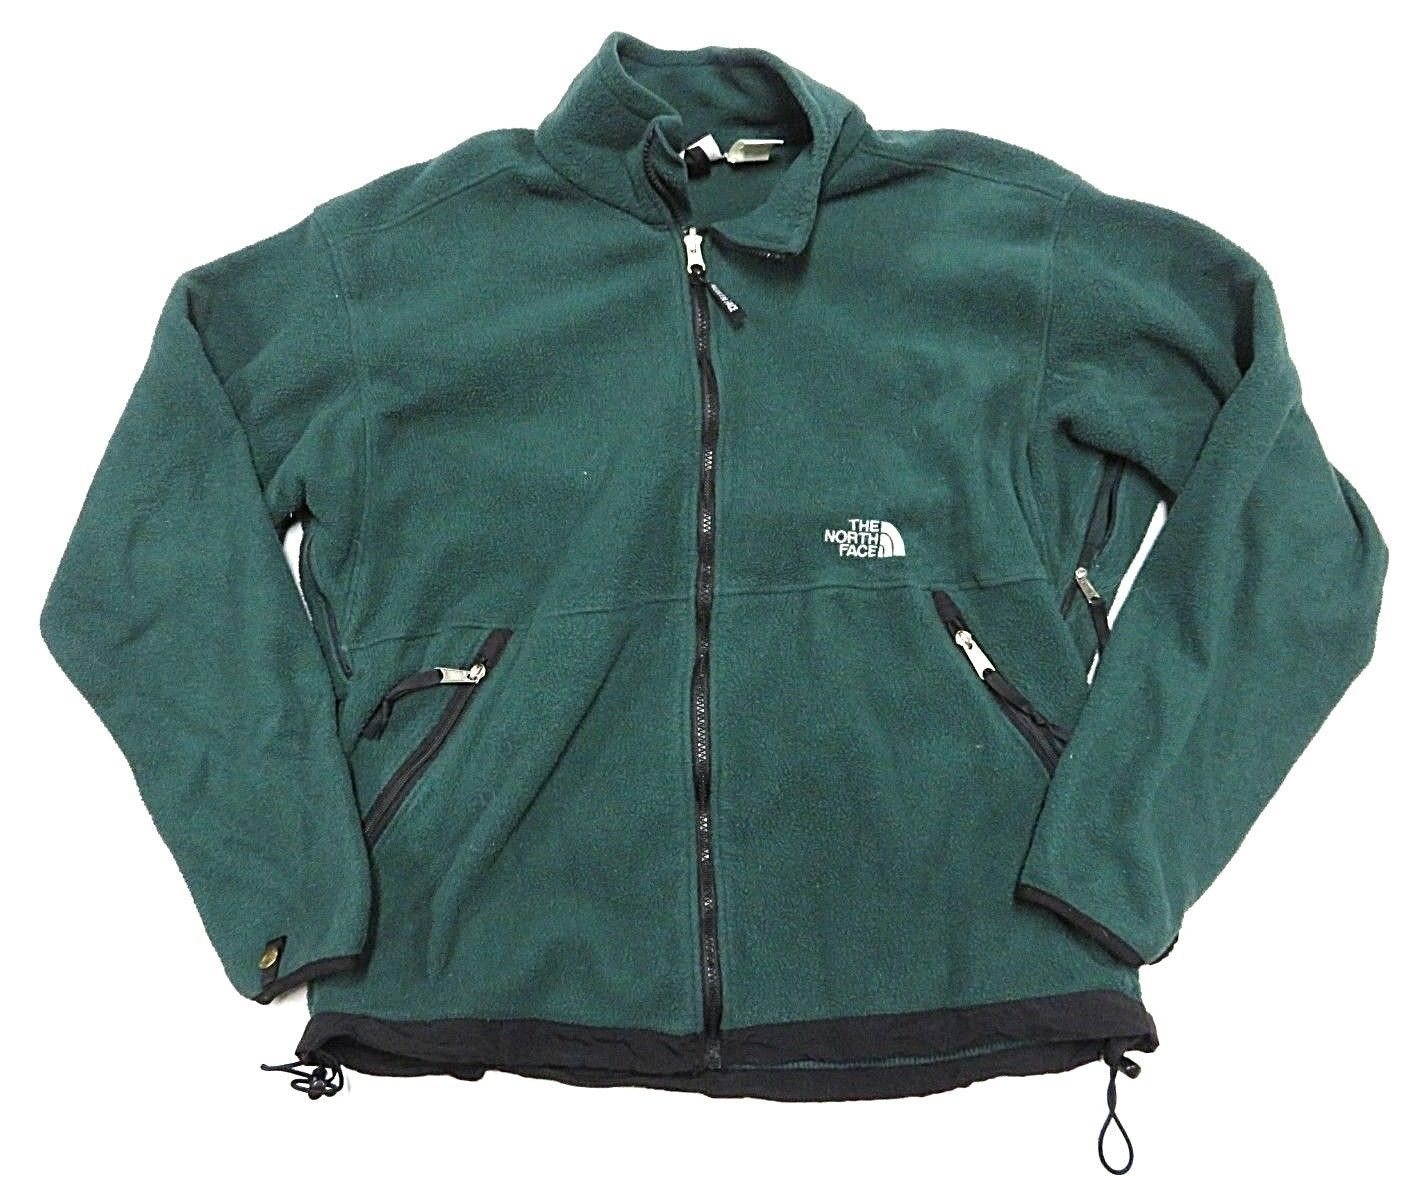 02ac6bcf1 VTG The North Face Green Outerwear Jacket and 50 similar items